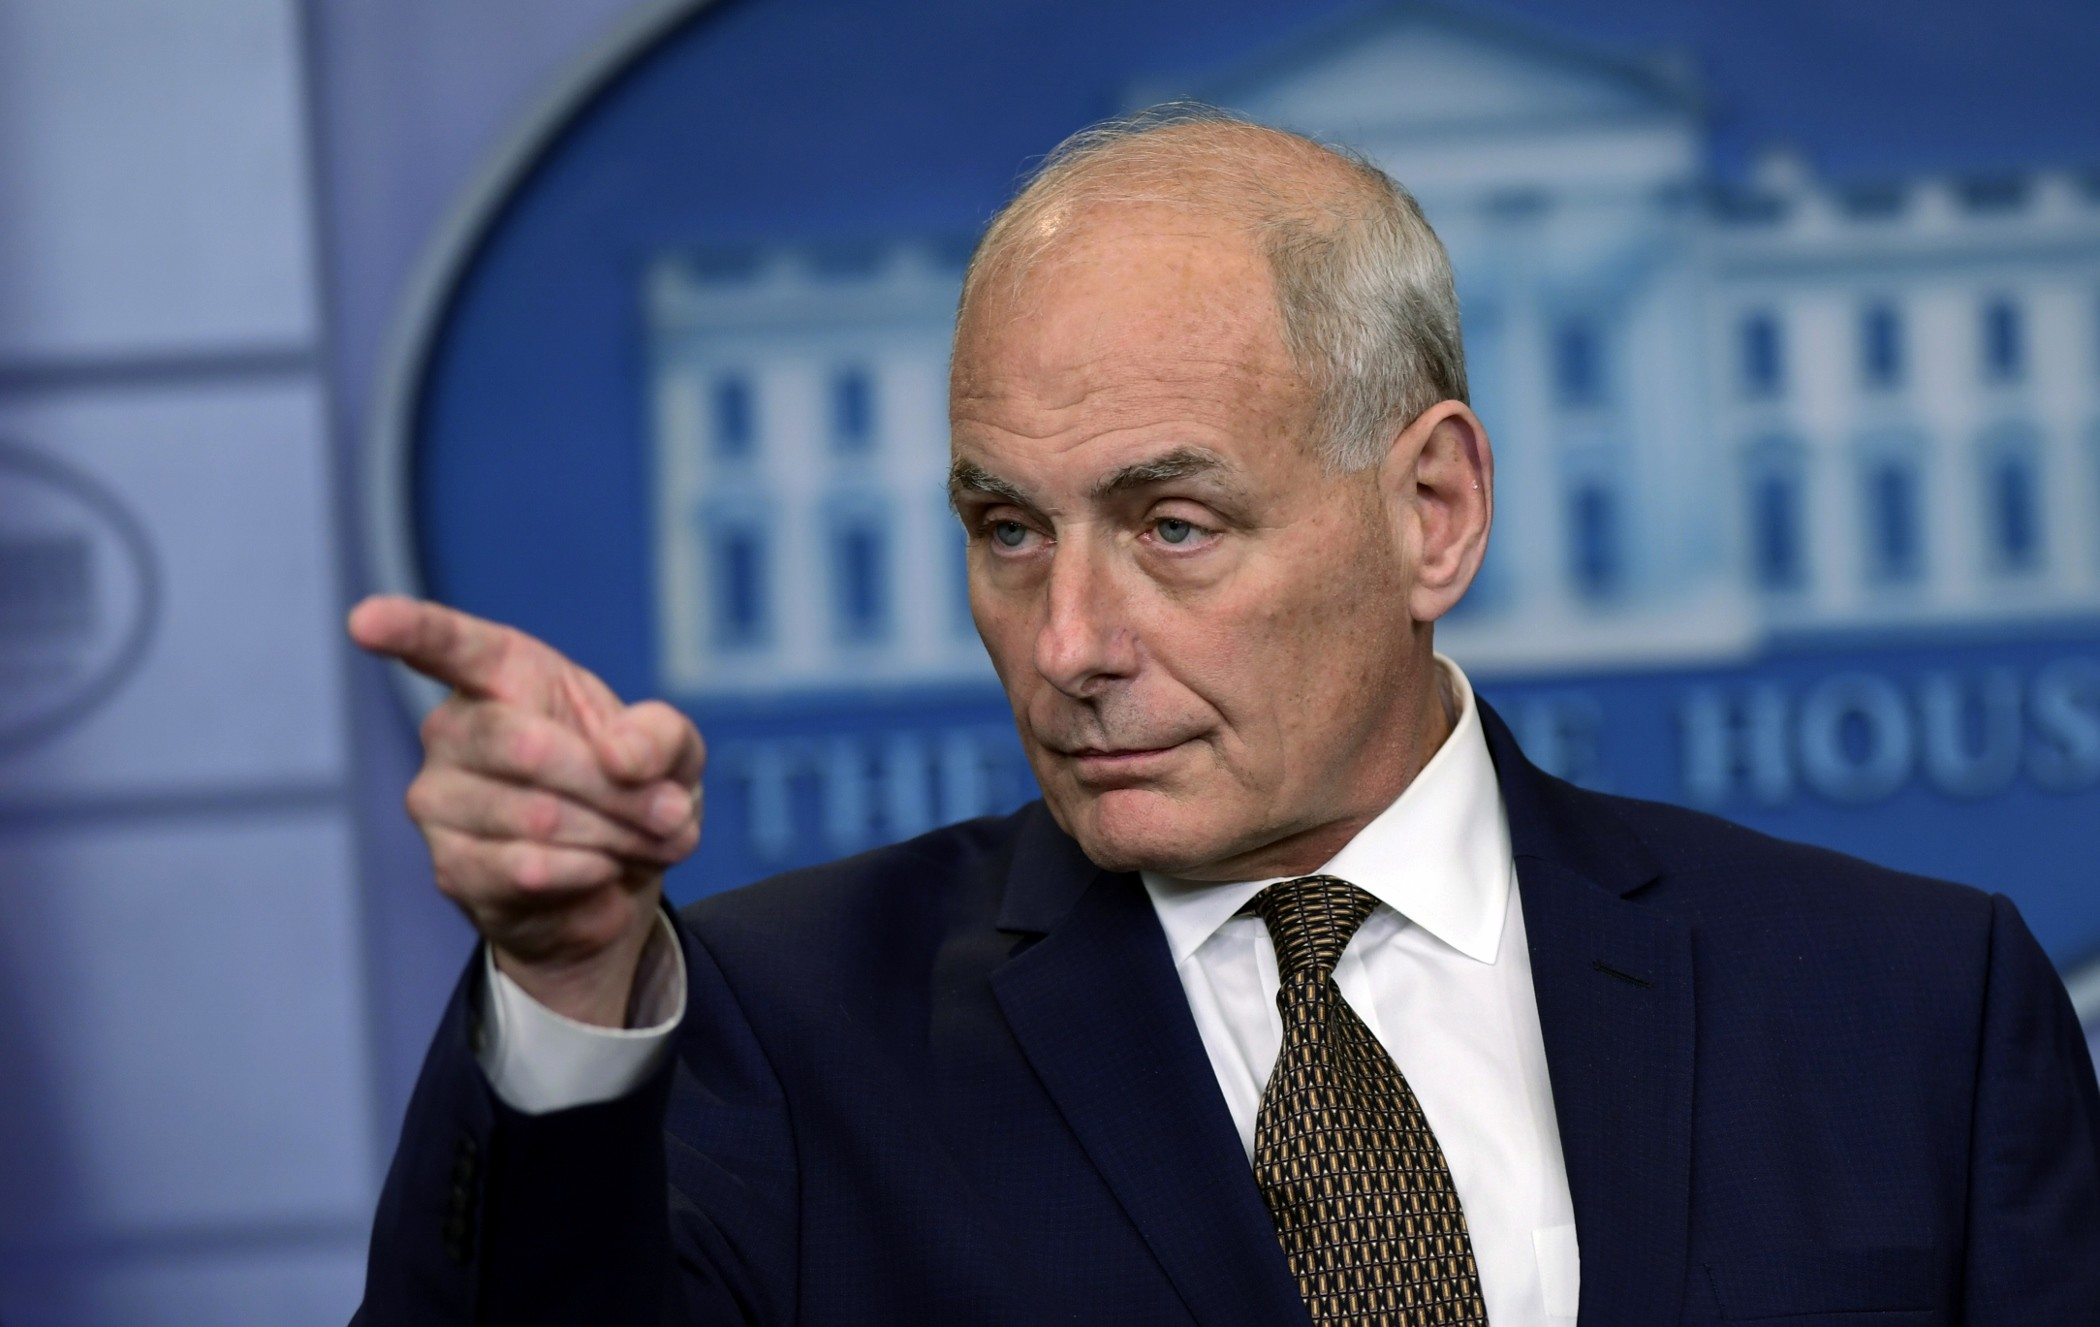 John Kelly, chef de cabinet de la Maison-Blanche. Photo: AP